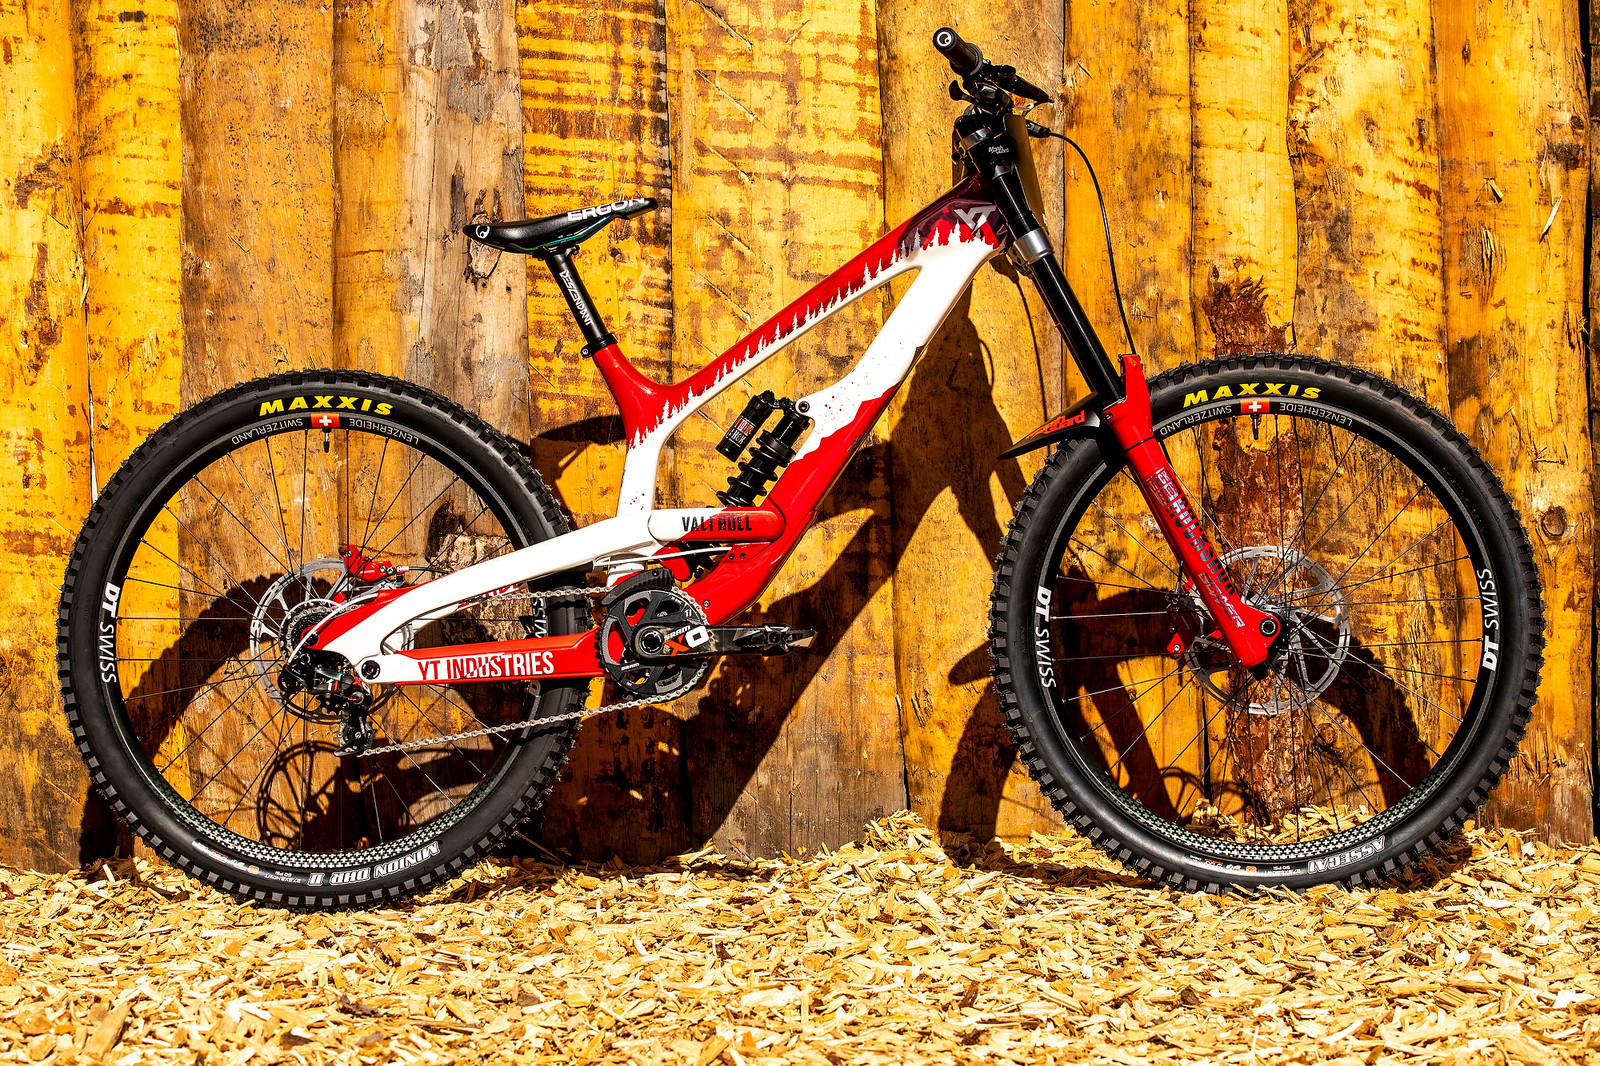 WORLD CHAMPS BIKE - Vali Holl's YT TUES - WORLD CHAMPS BIKE - Vali Holl's YT TUES - Mountain Biking Pictures - Vital MTB